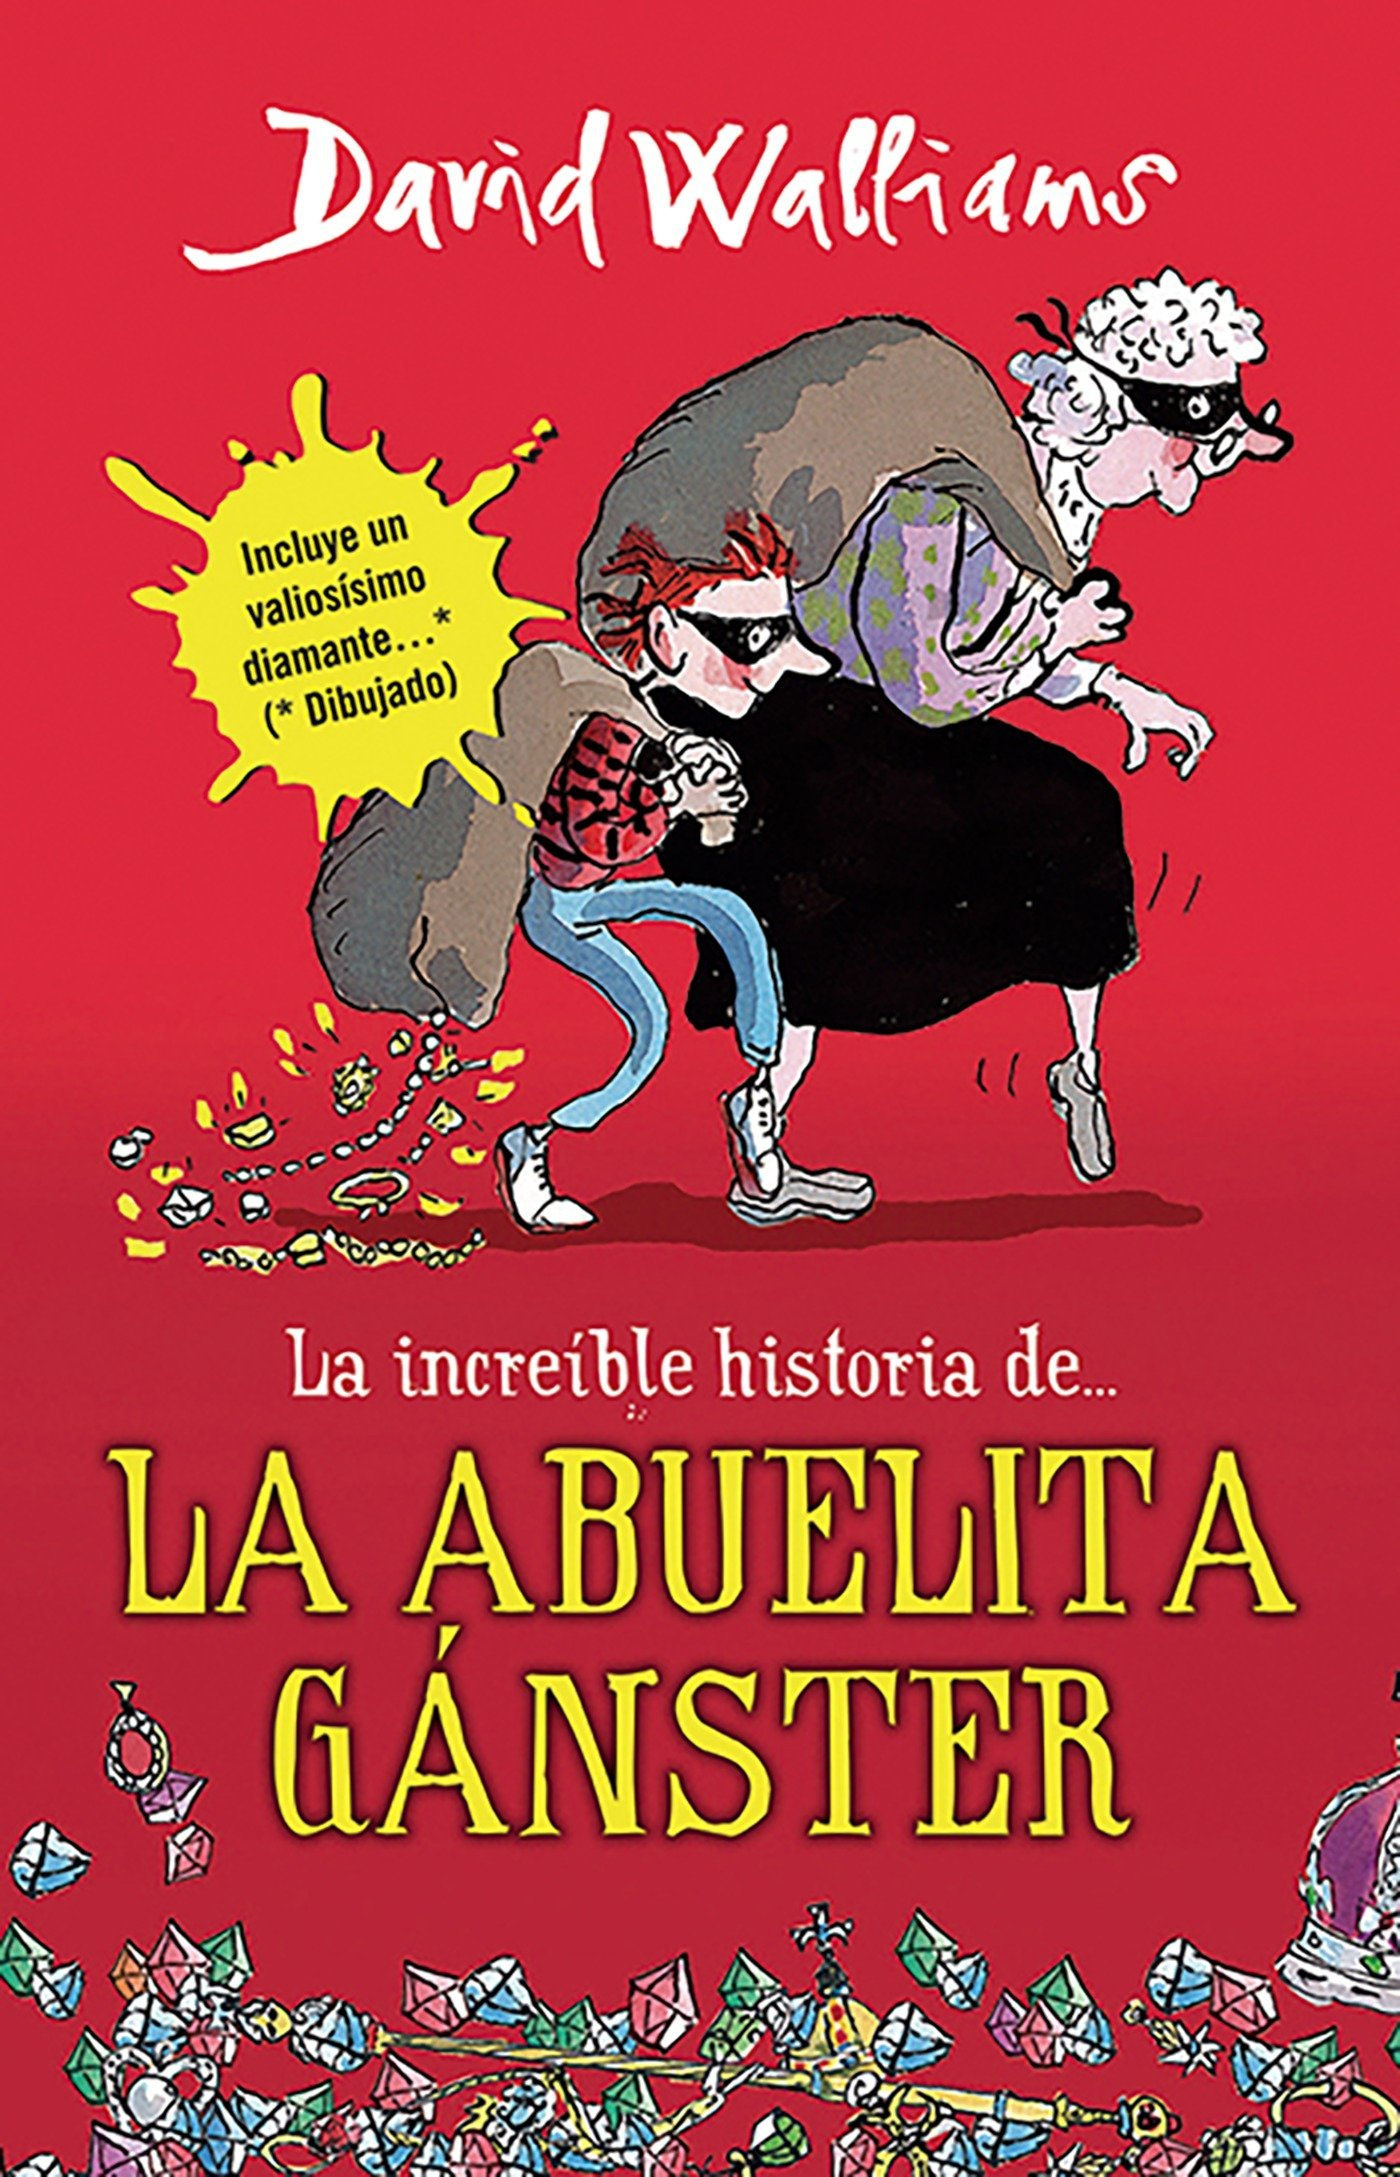 La increíble historia de...la abuela ganster (Spanish Edition): David Walliams: 9786073118569: Amazon.com: Books